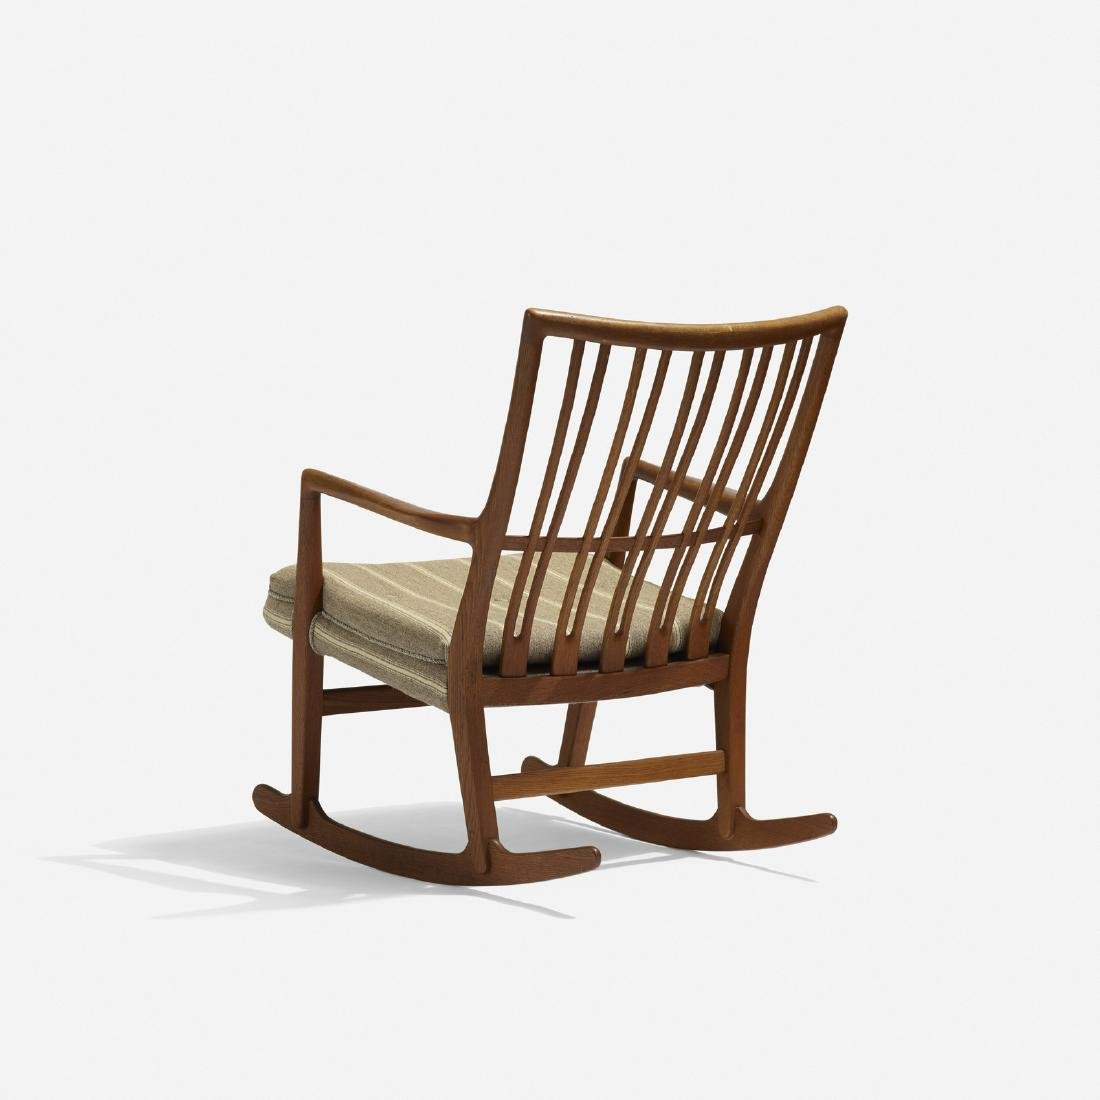 Hans J. Wegner, rocking chair